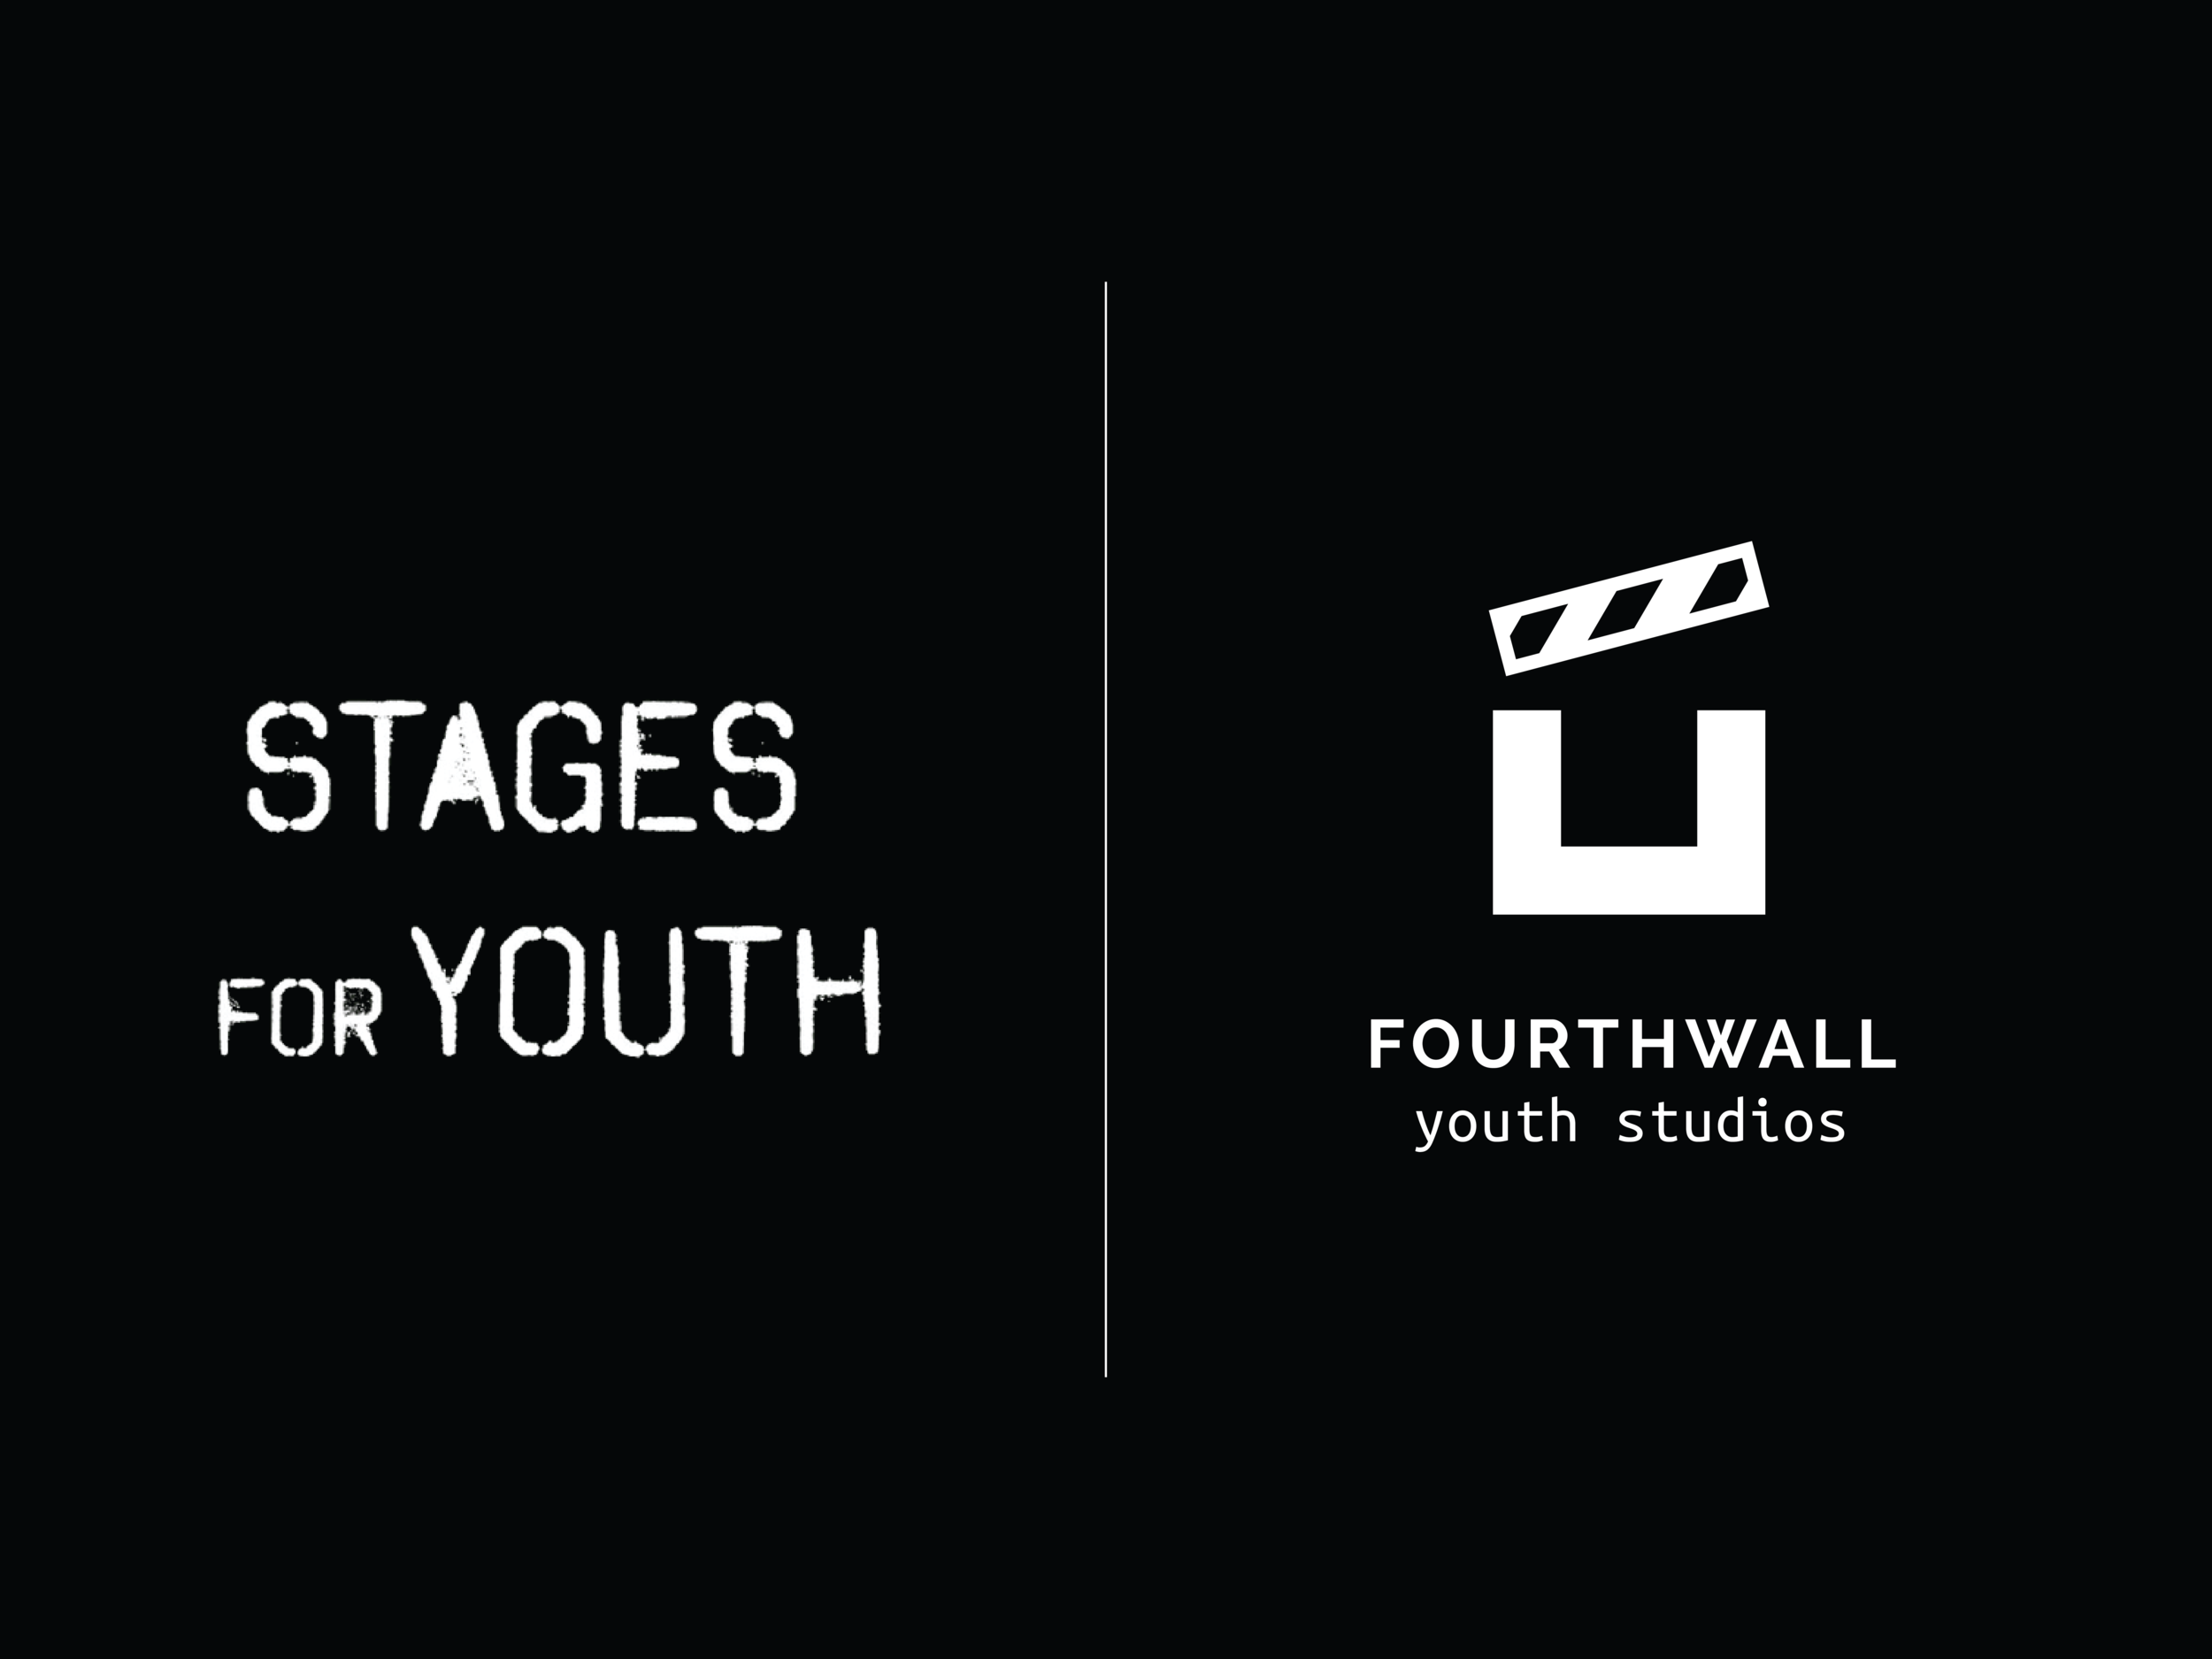 Before (Stages for Youth) and after (Fourthwall Youth Studios) transformation.